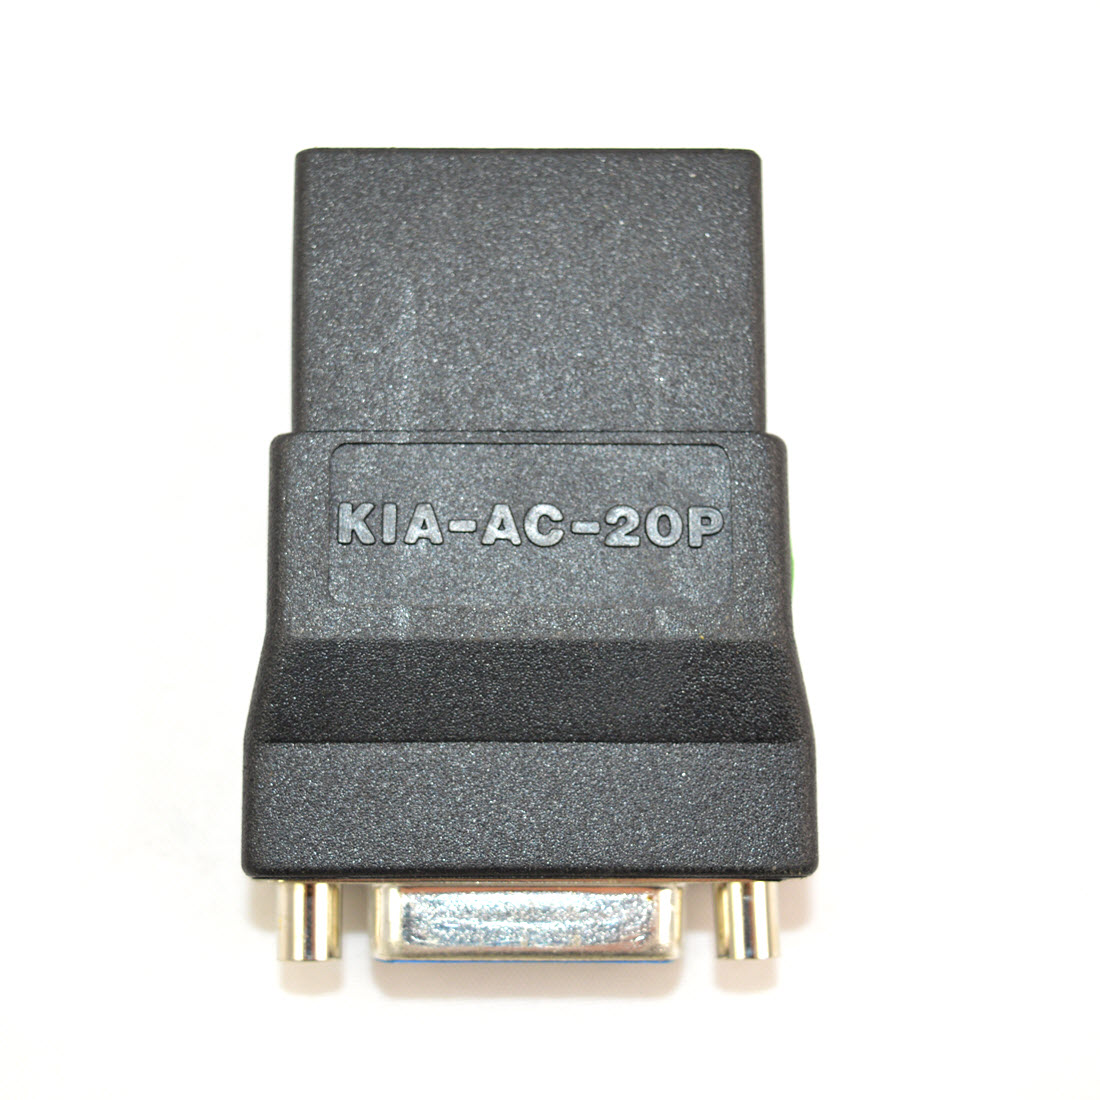 Autoland-Kia-pre-16-pin-diagnostic-connector